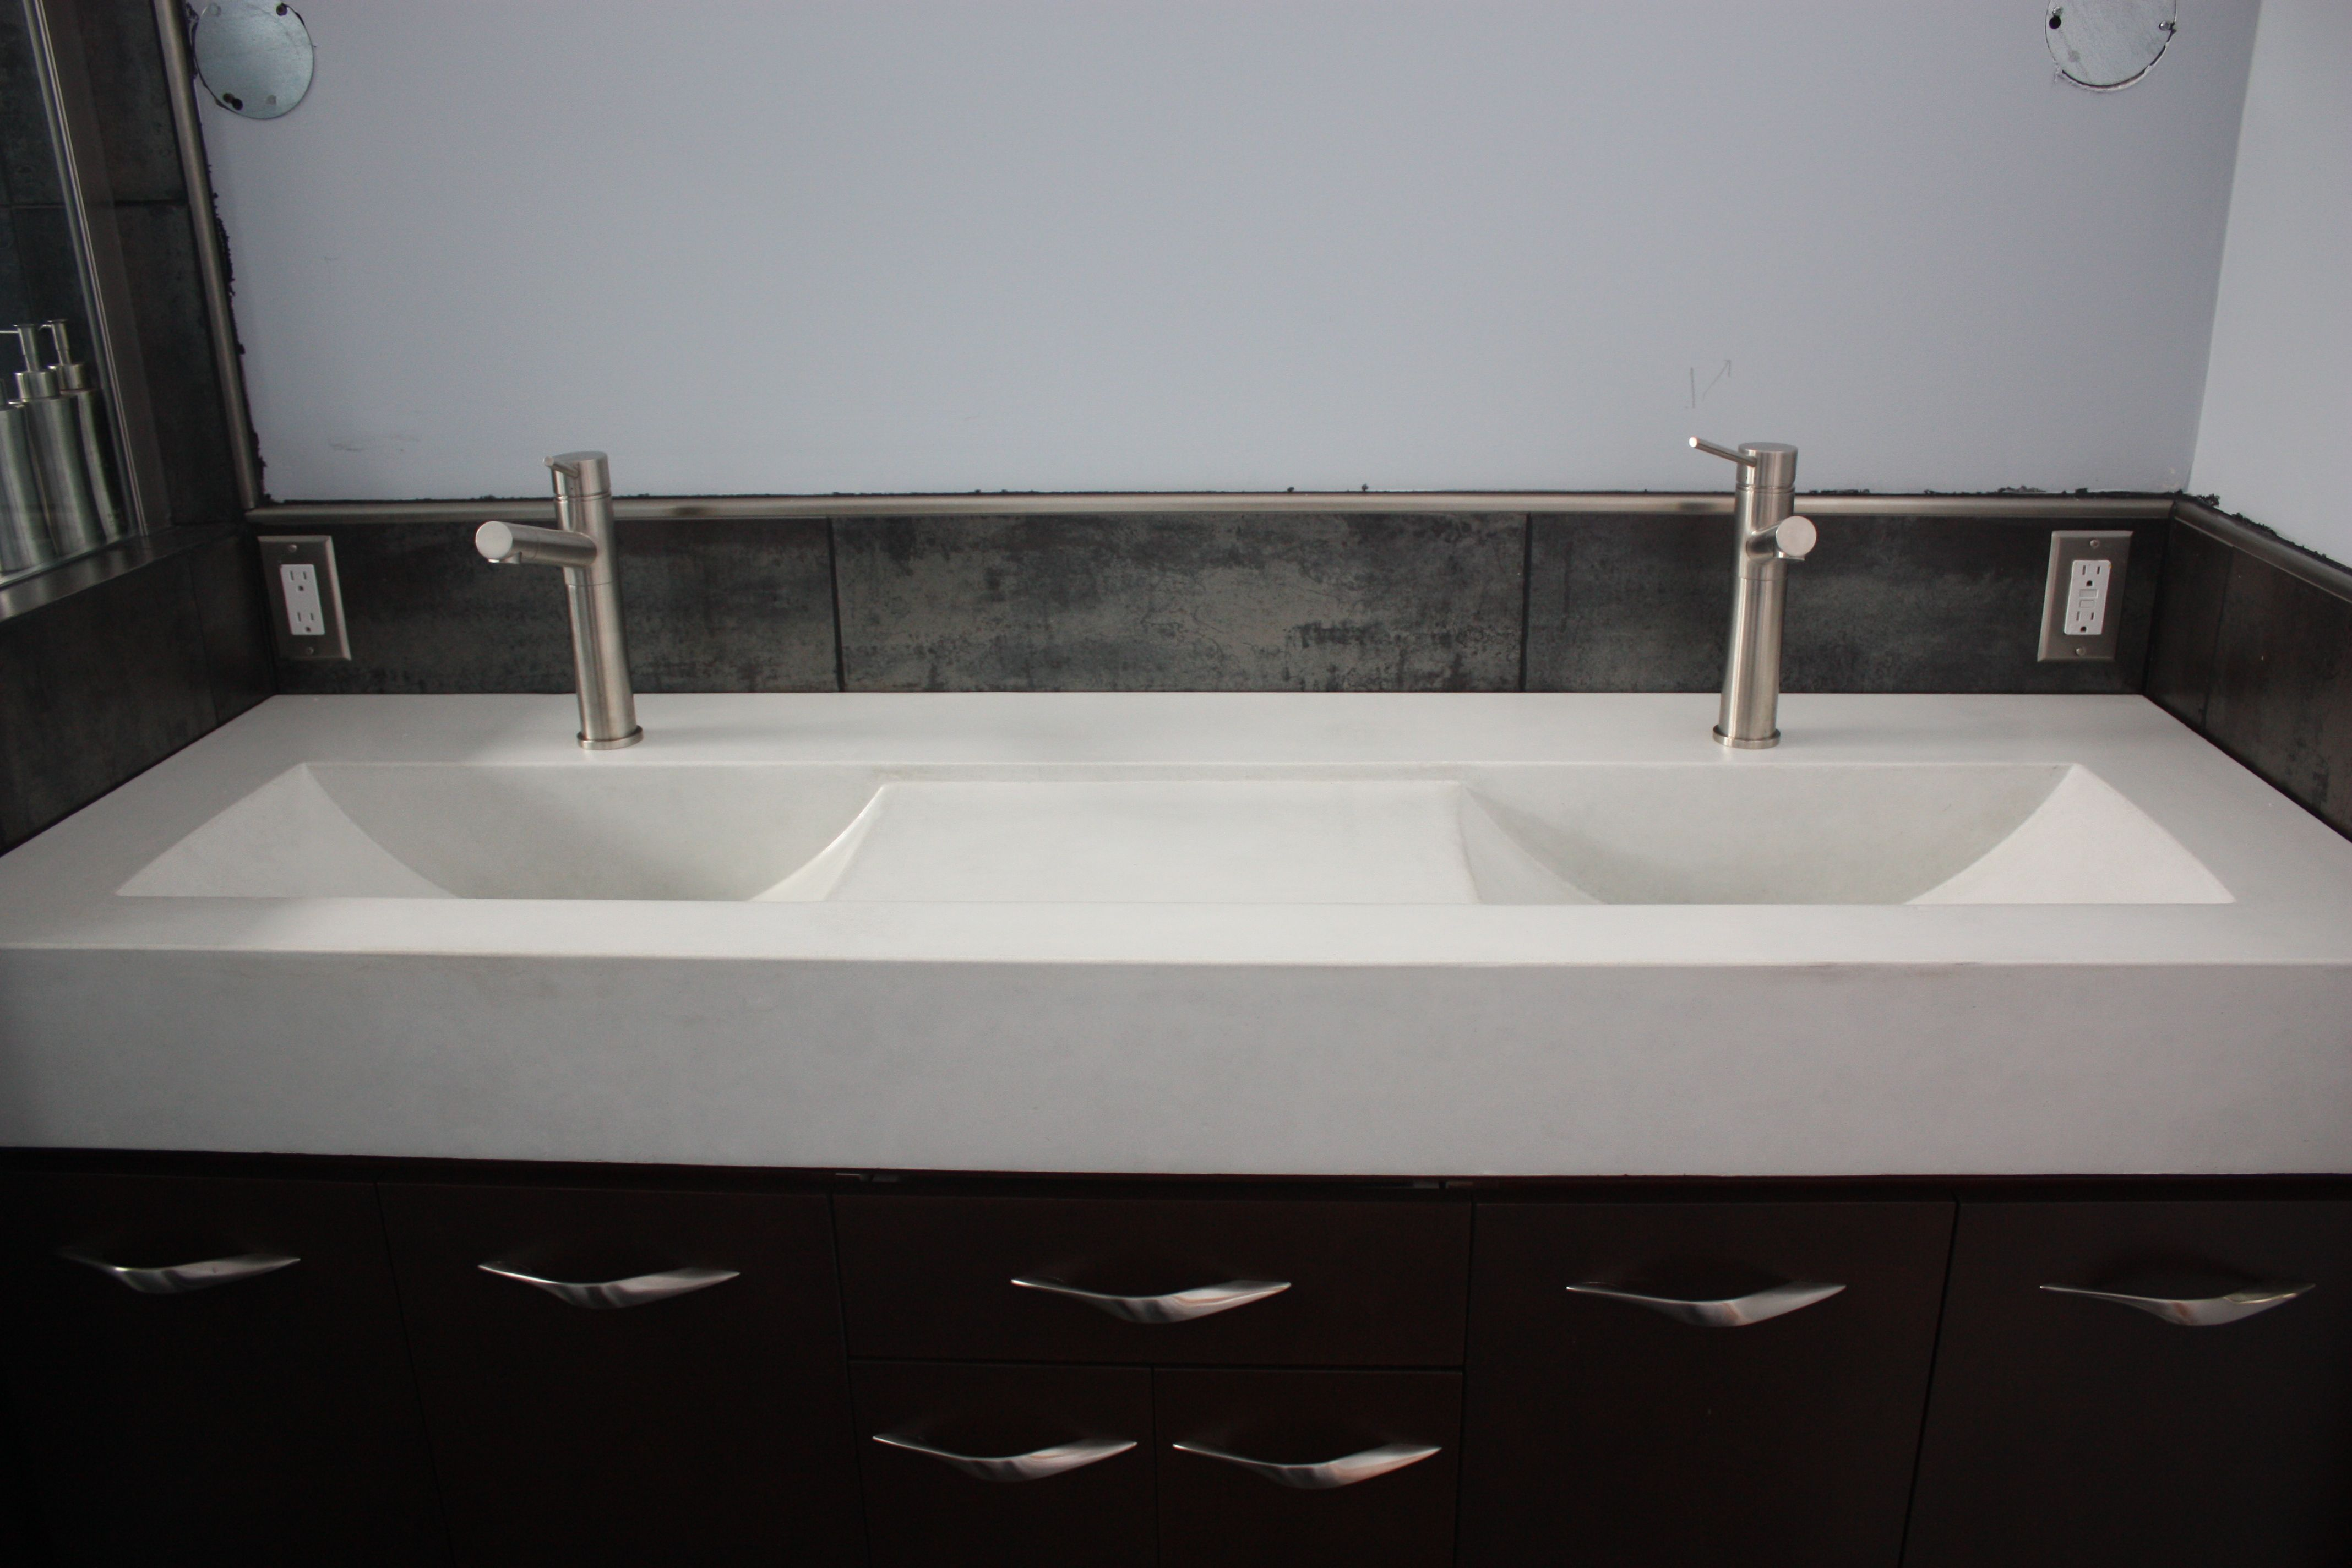 Small Bathroom Double Sink A Double Eclipse Concrete Vanity Top The Recessed Area